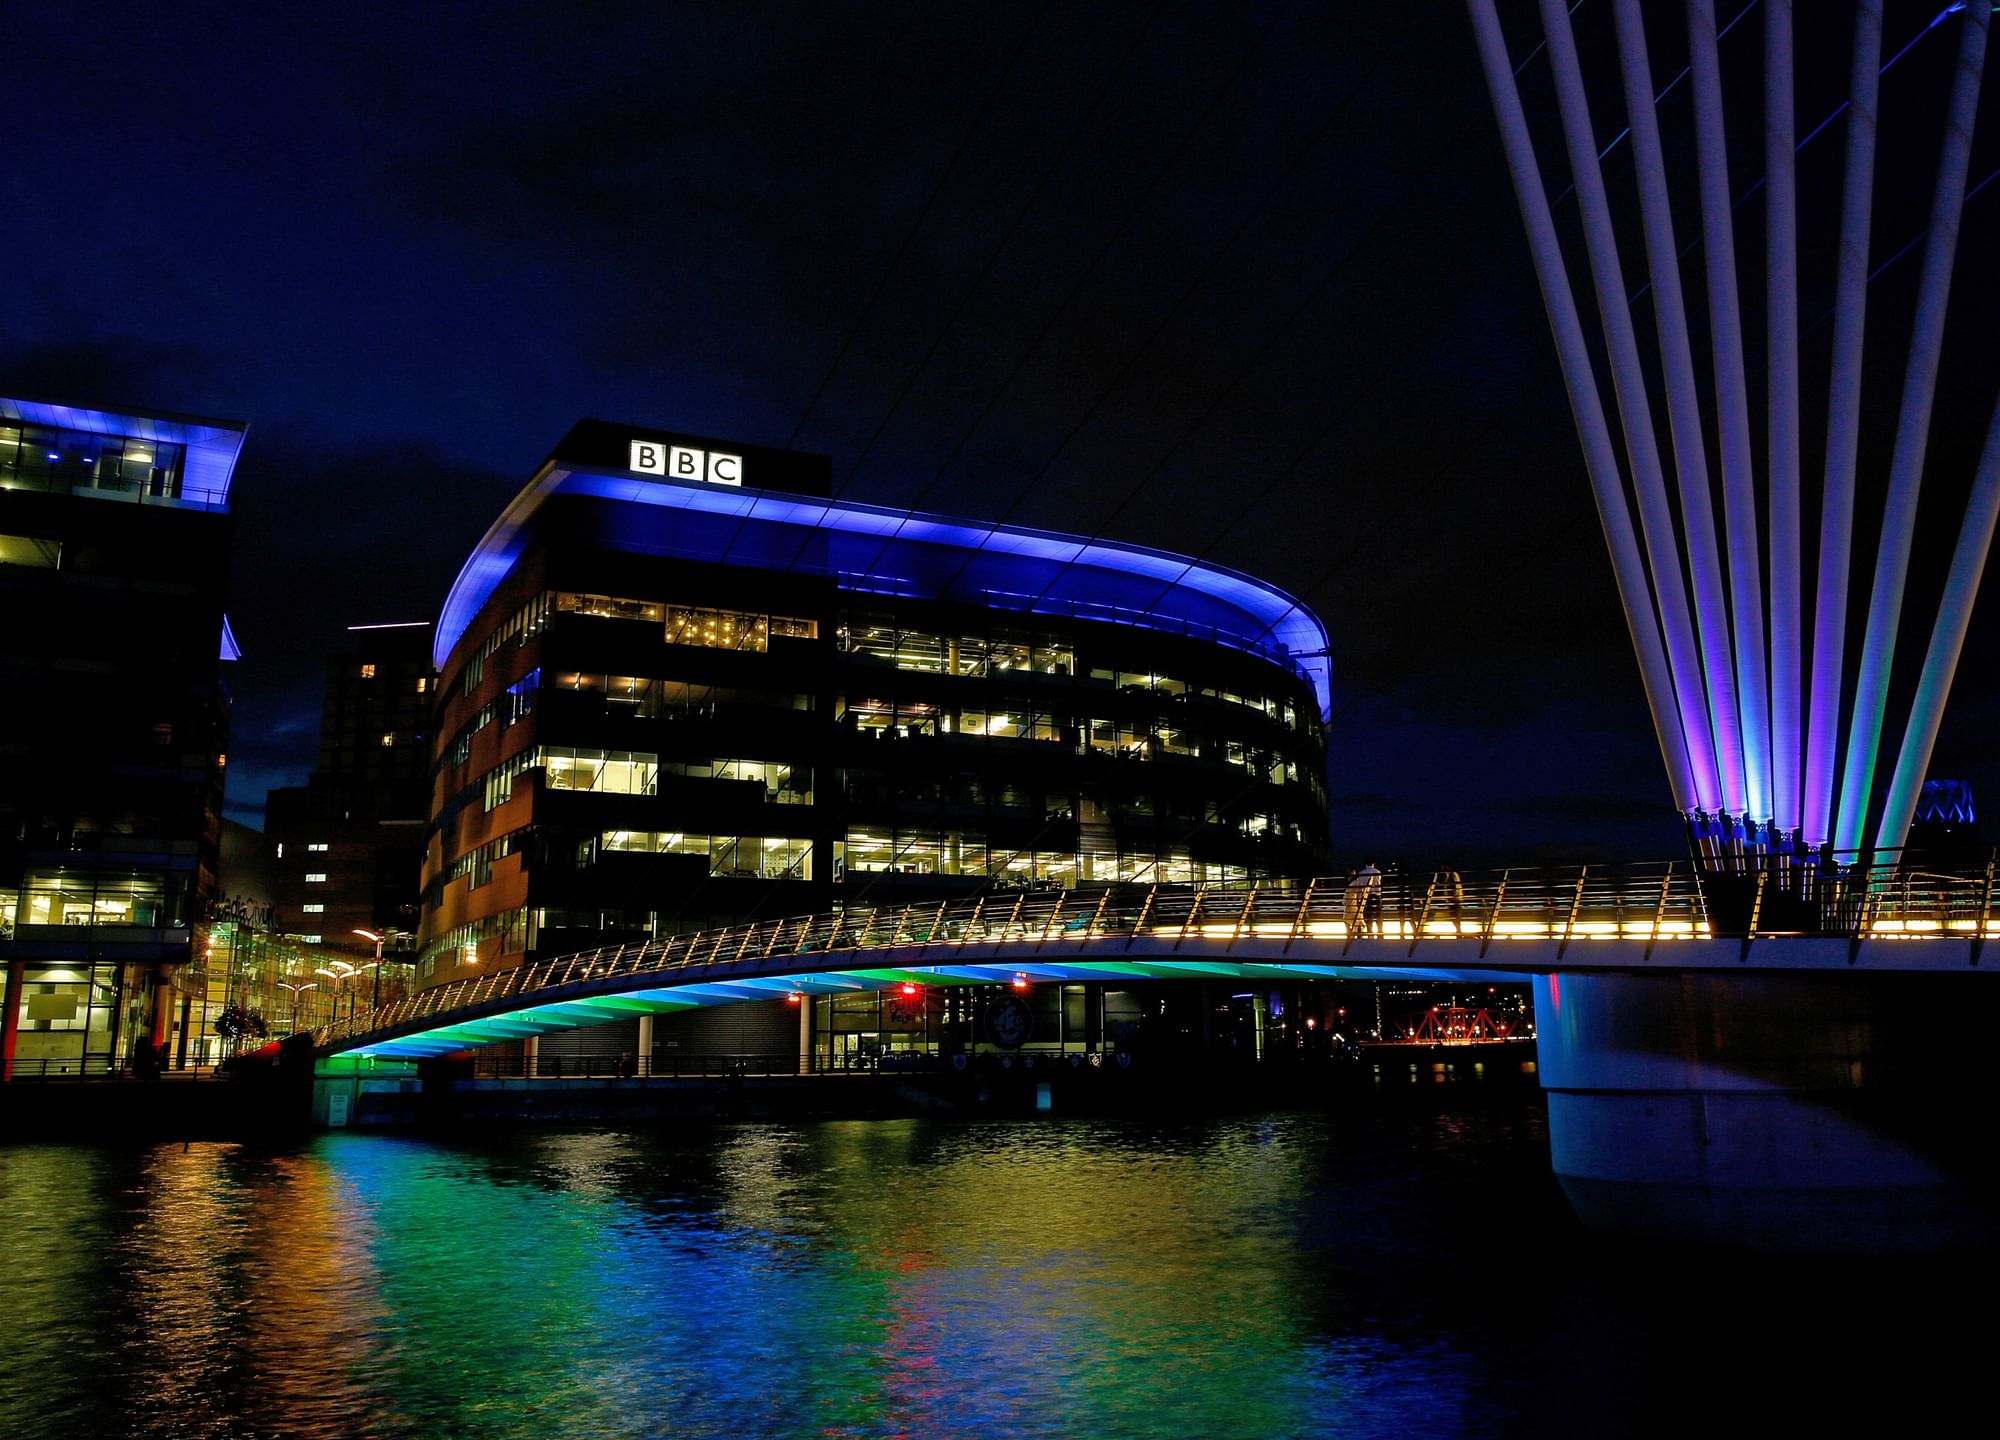 BBC To Axe 450 Newsroom Jobs